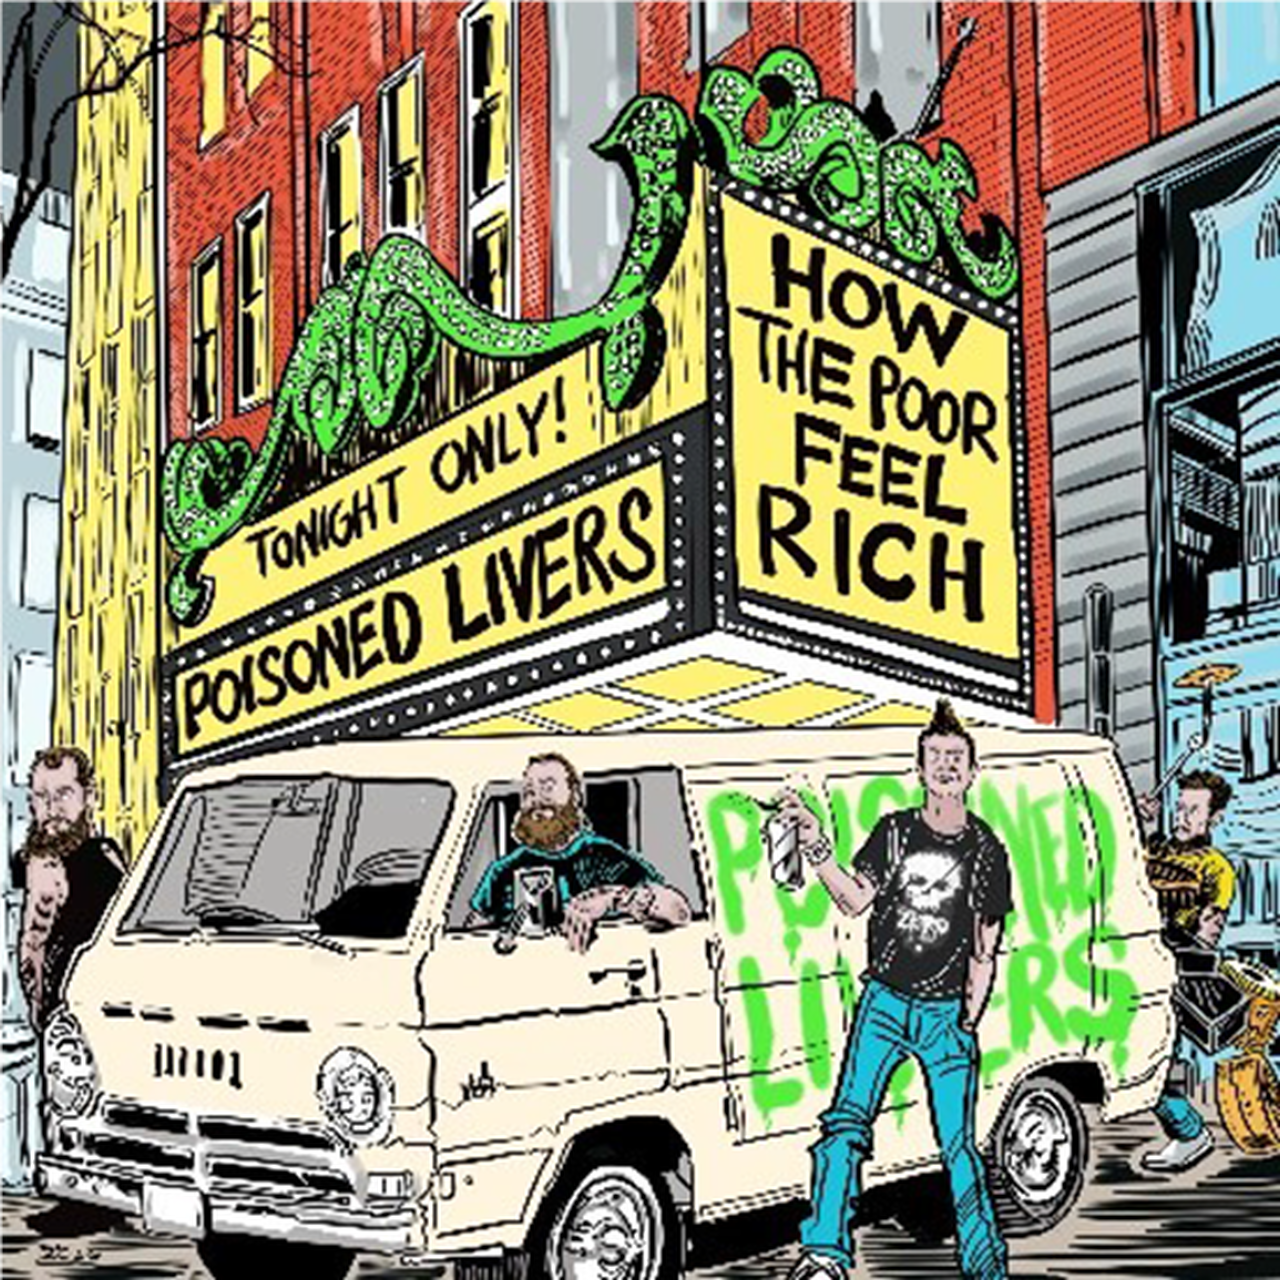 POISONED LIVERS-HOW THE POOR FEEL RICH 12'' EP *NEW*